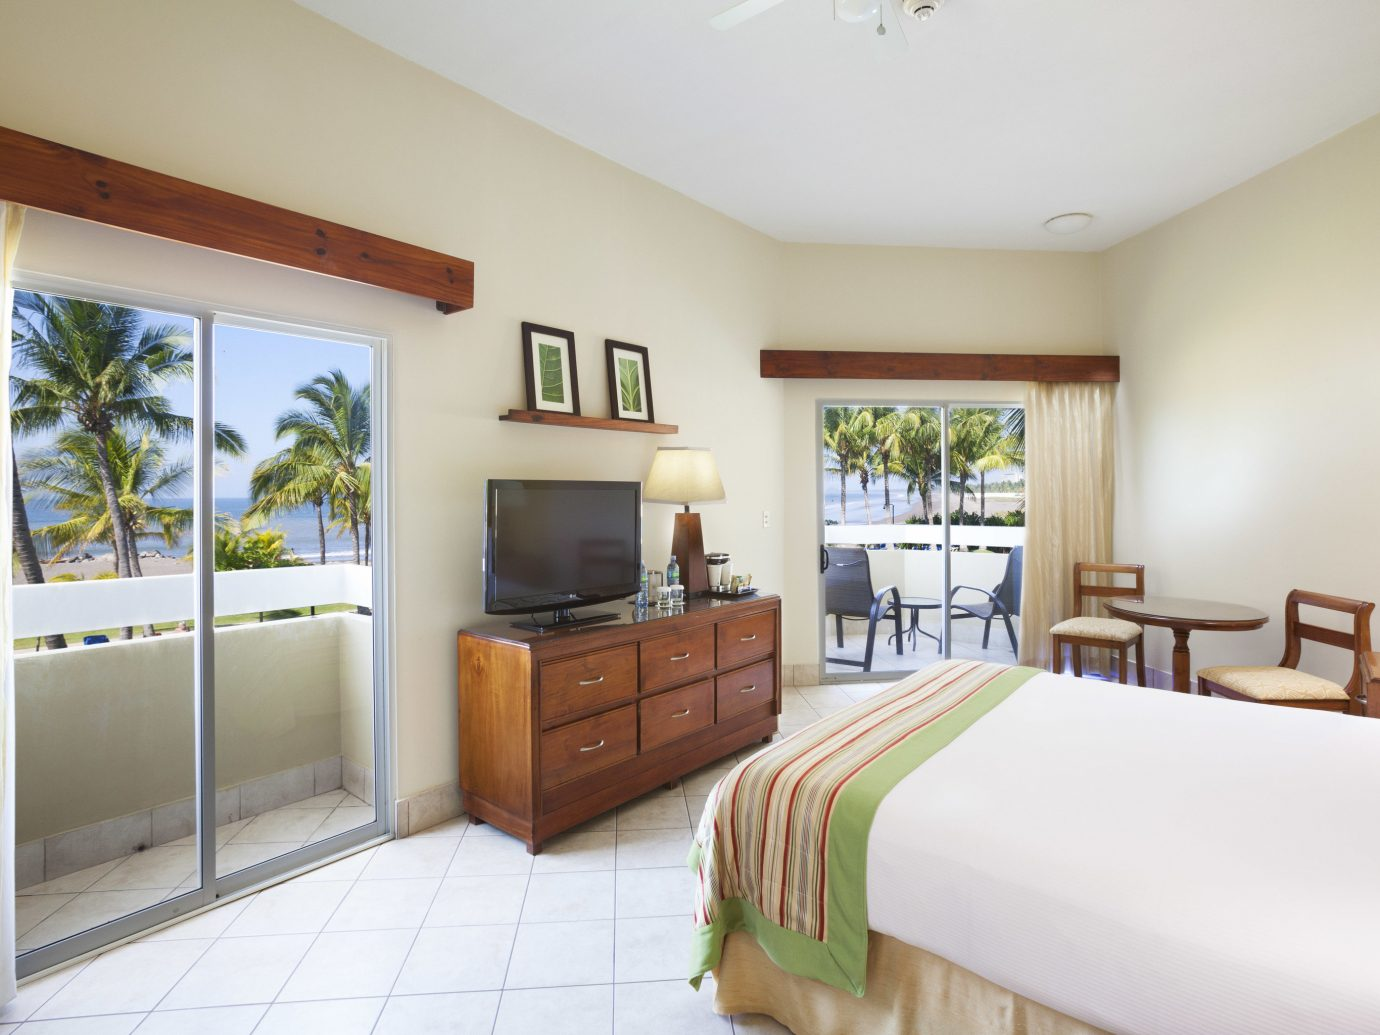 A guest bedroom at Fiesta Resort All Inclusive Costa Rica